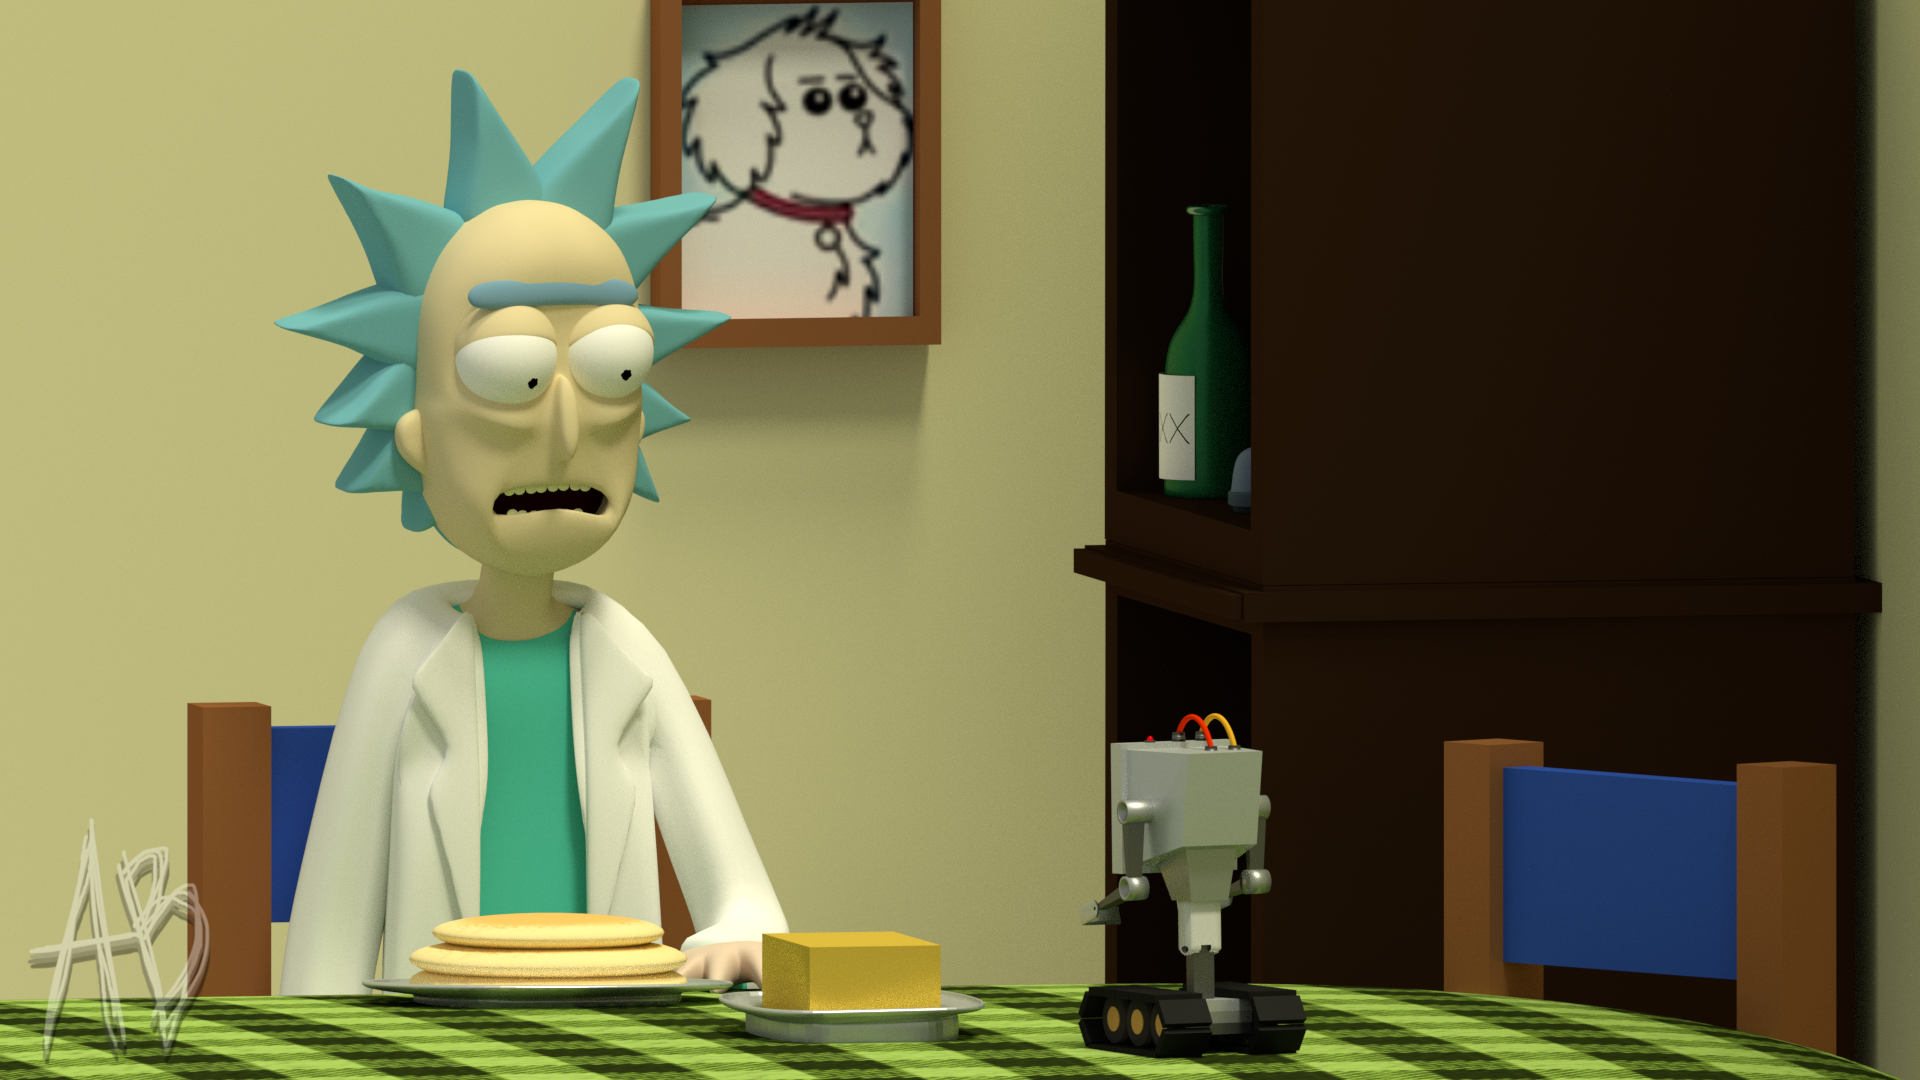 blender rick and morty you pass butter by anthonyblender on